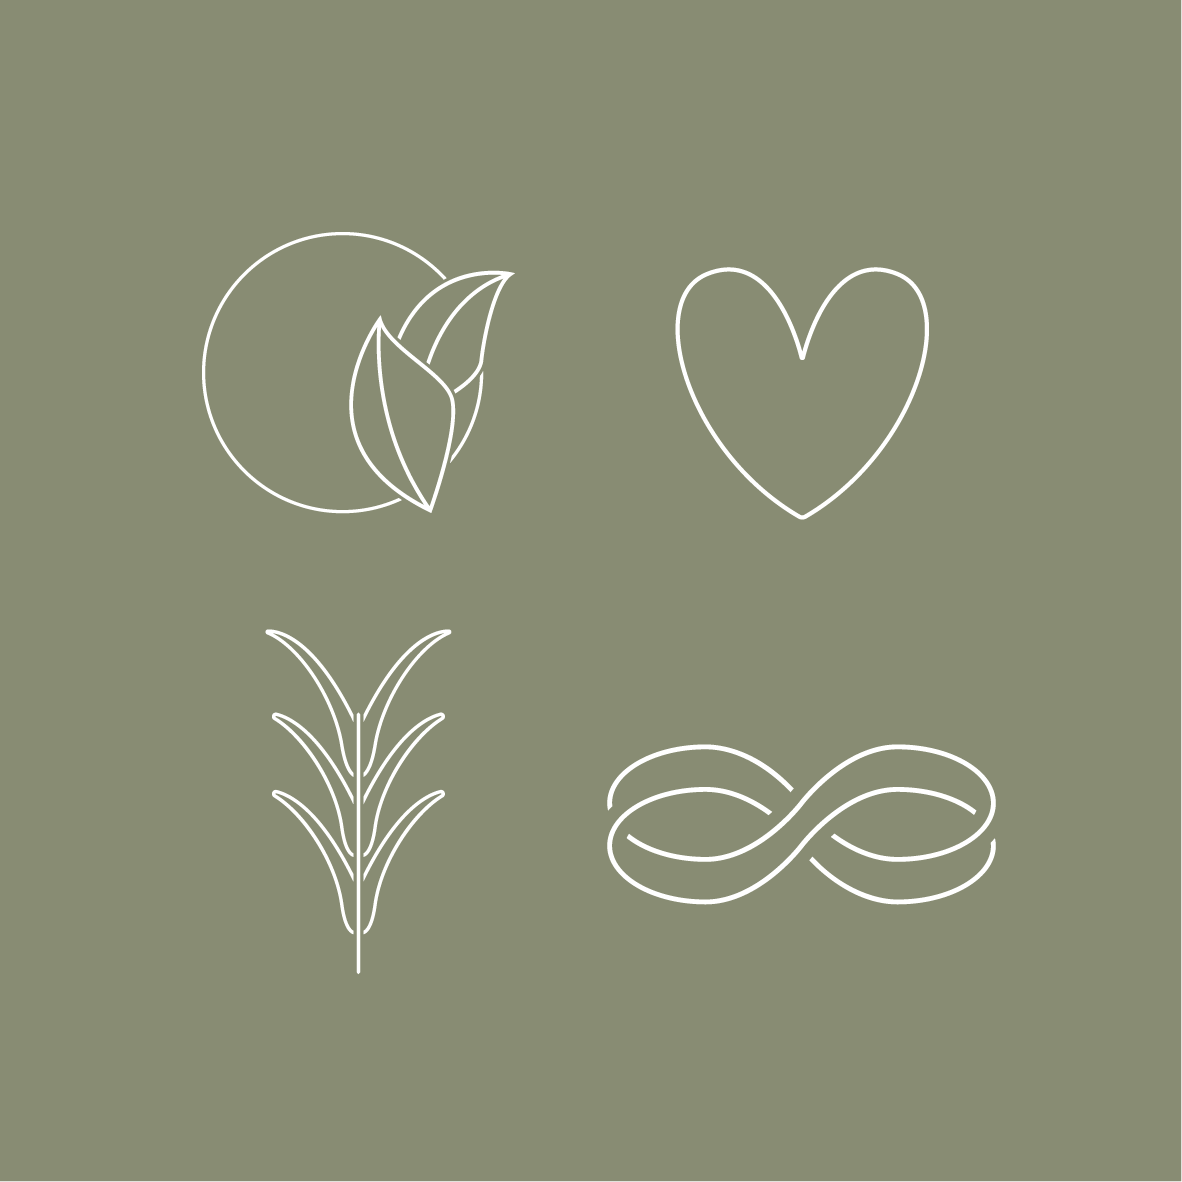 The icons were created to showcase their values which include: Ethical, Natural, Longevity and Conscious Hearts - which is essentially their ethos. - They offer sustainable products that are designed so consumers have confidence that they are treading lightly on the earth.